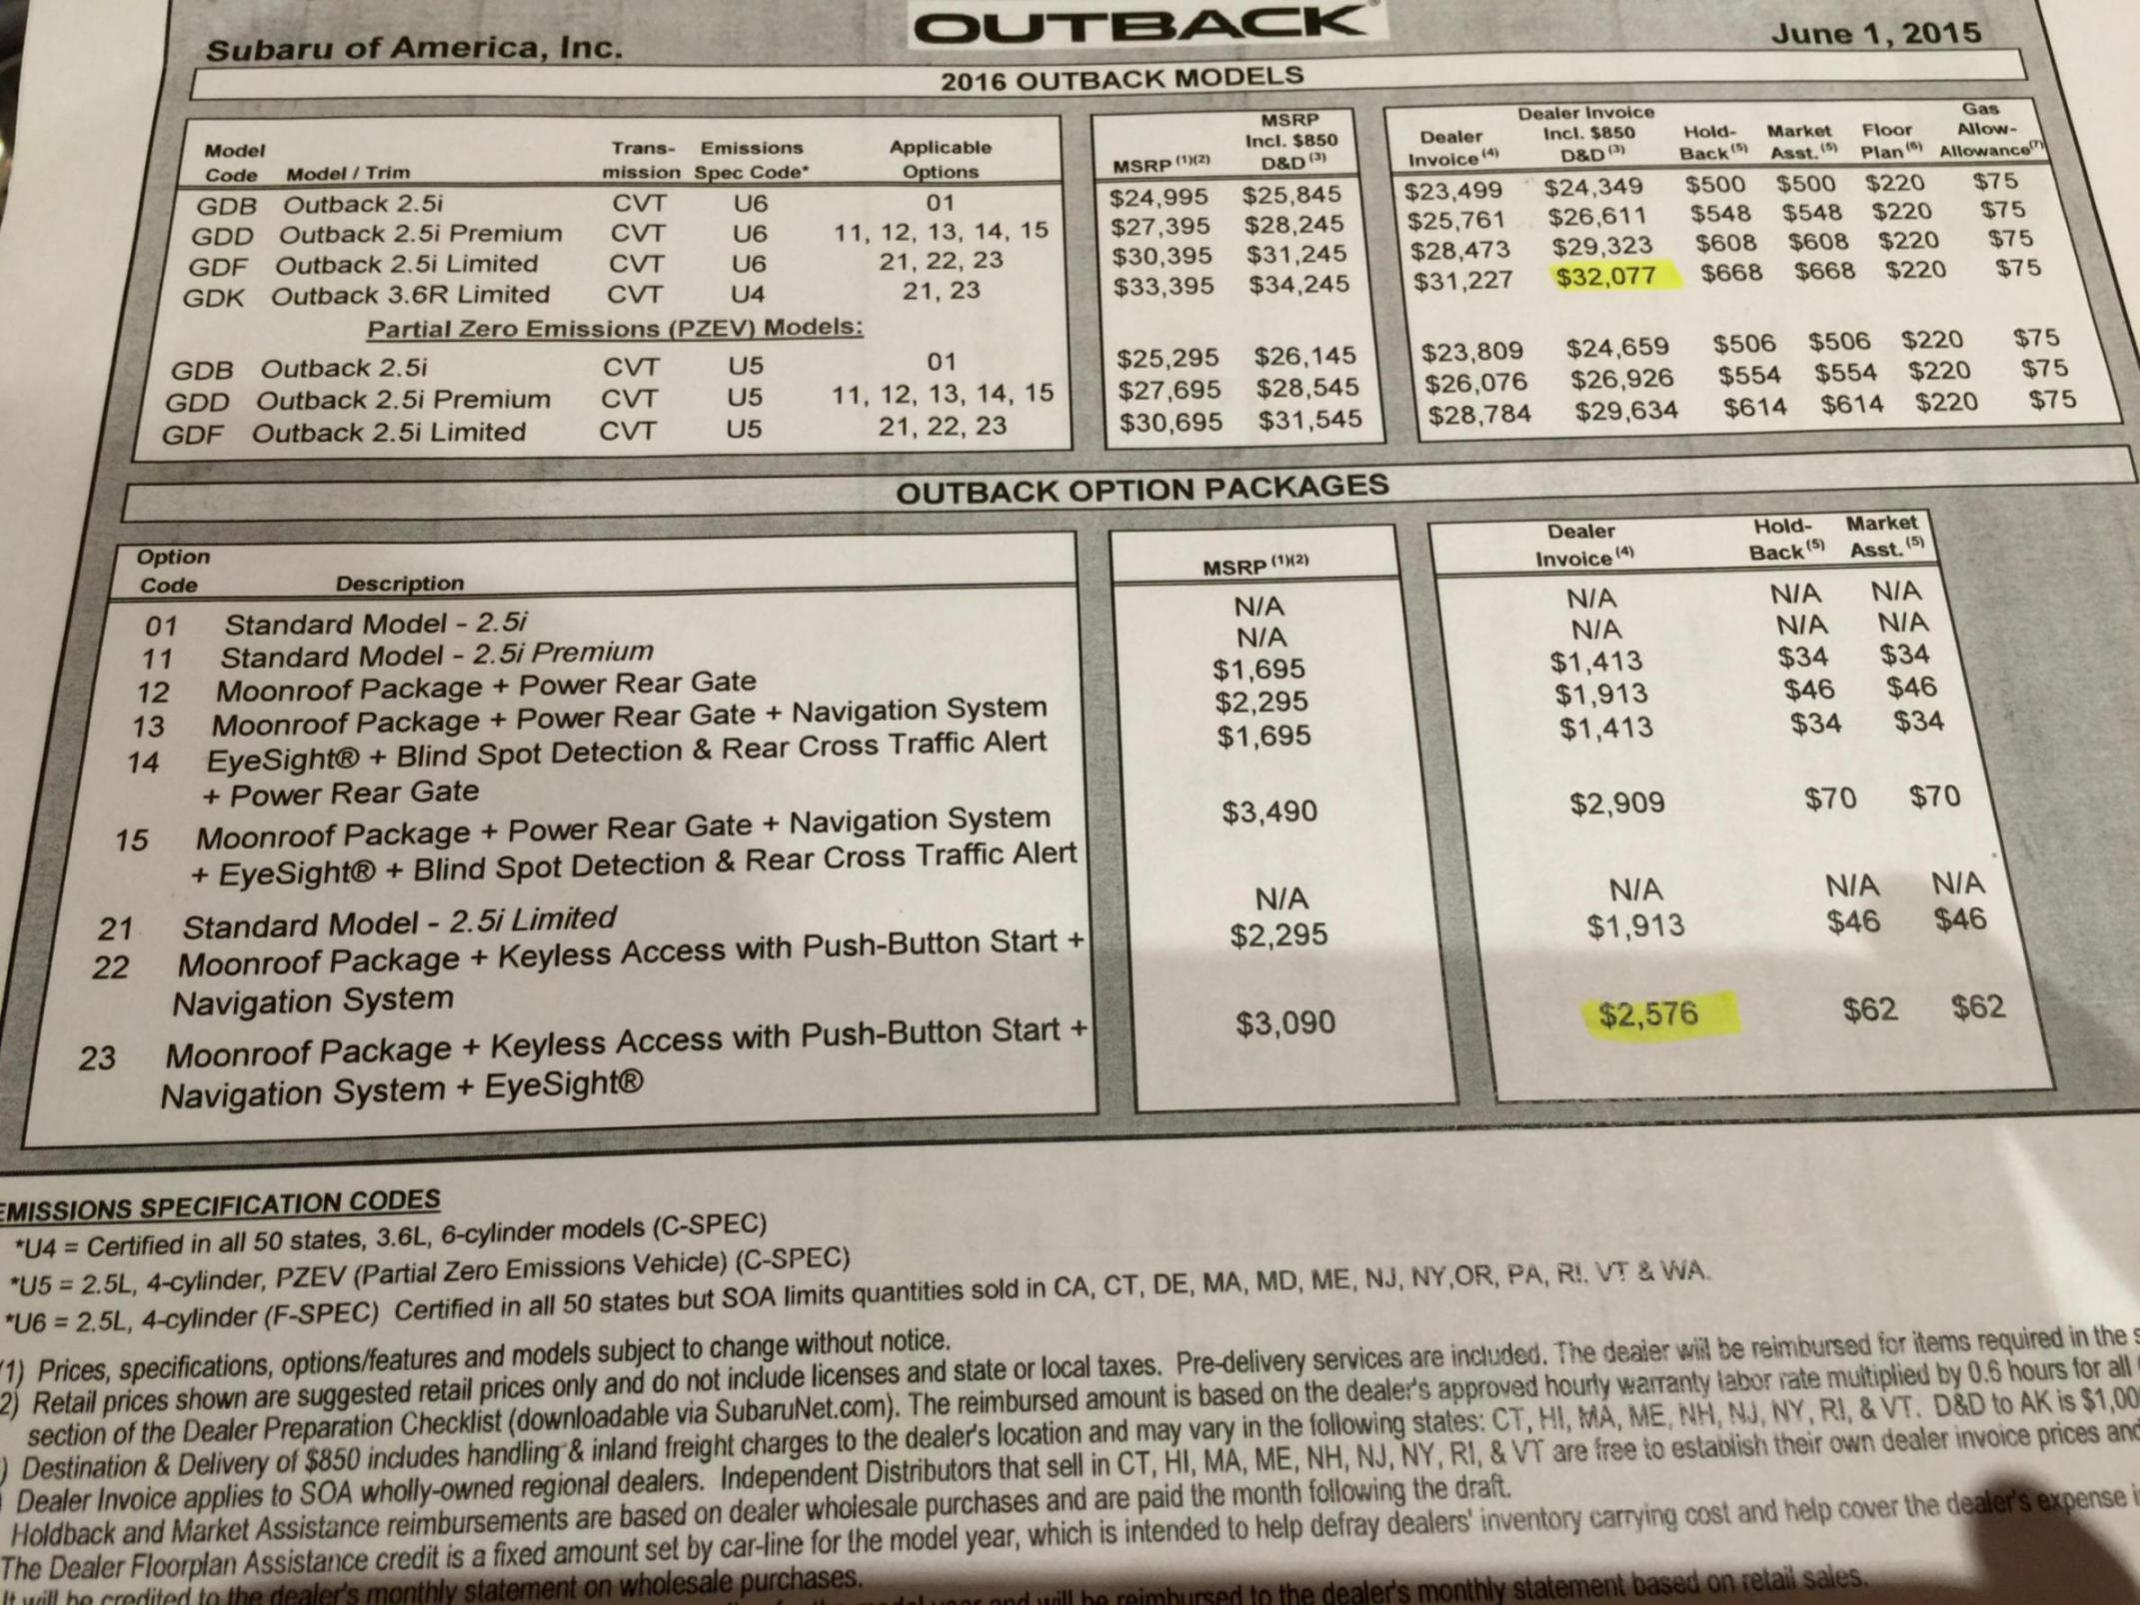 2016 outback prices did i get a good deal subaru outback dealer invoice price subaru